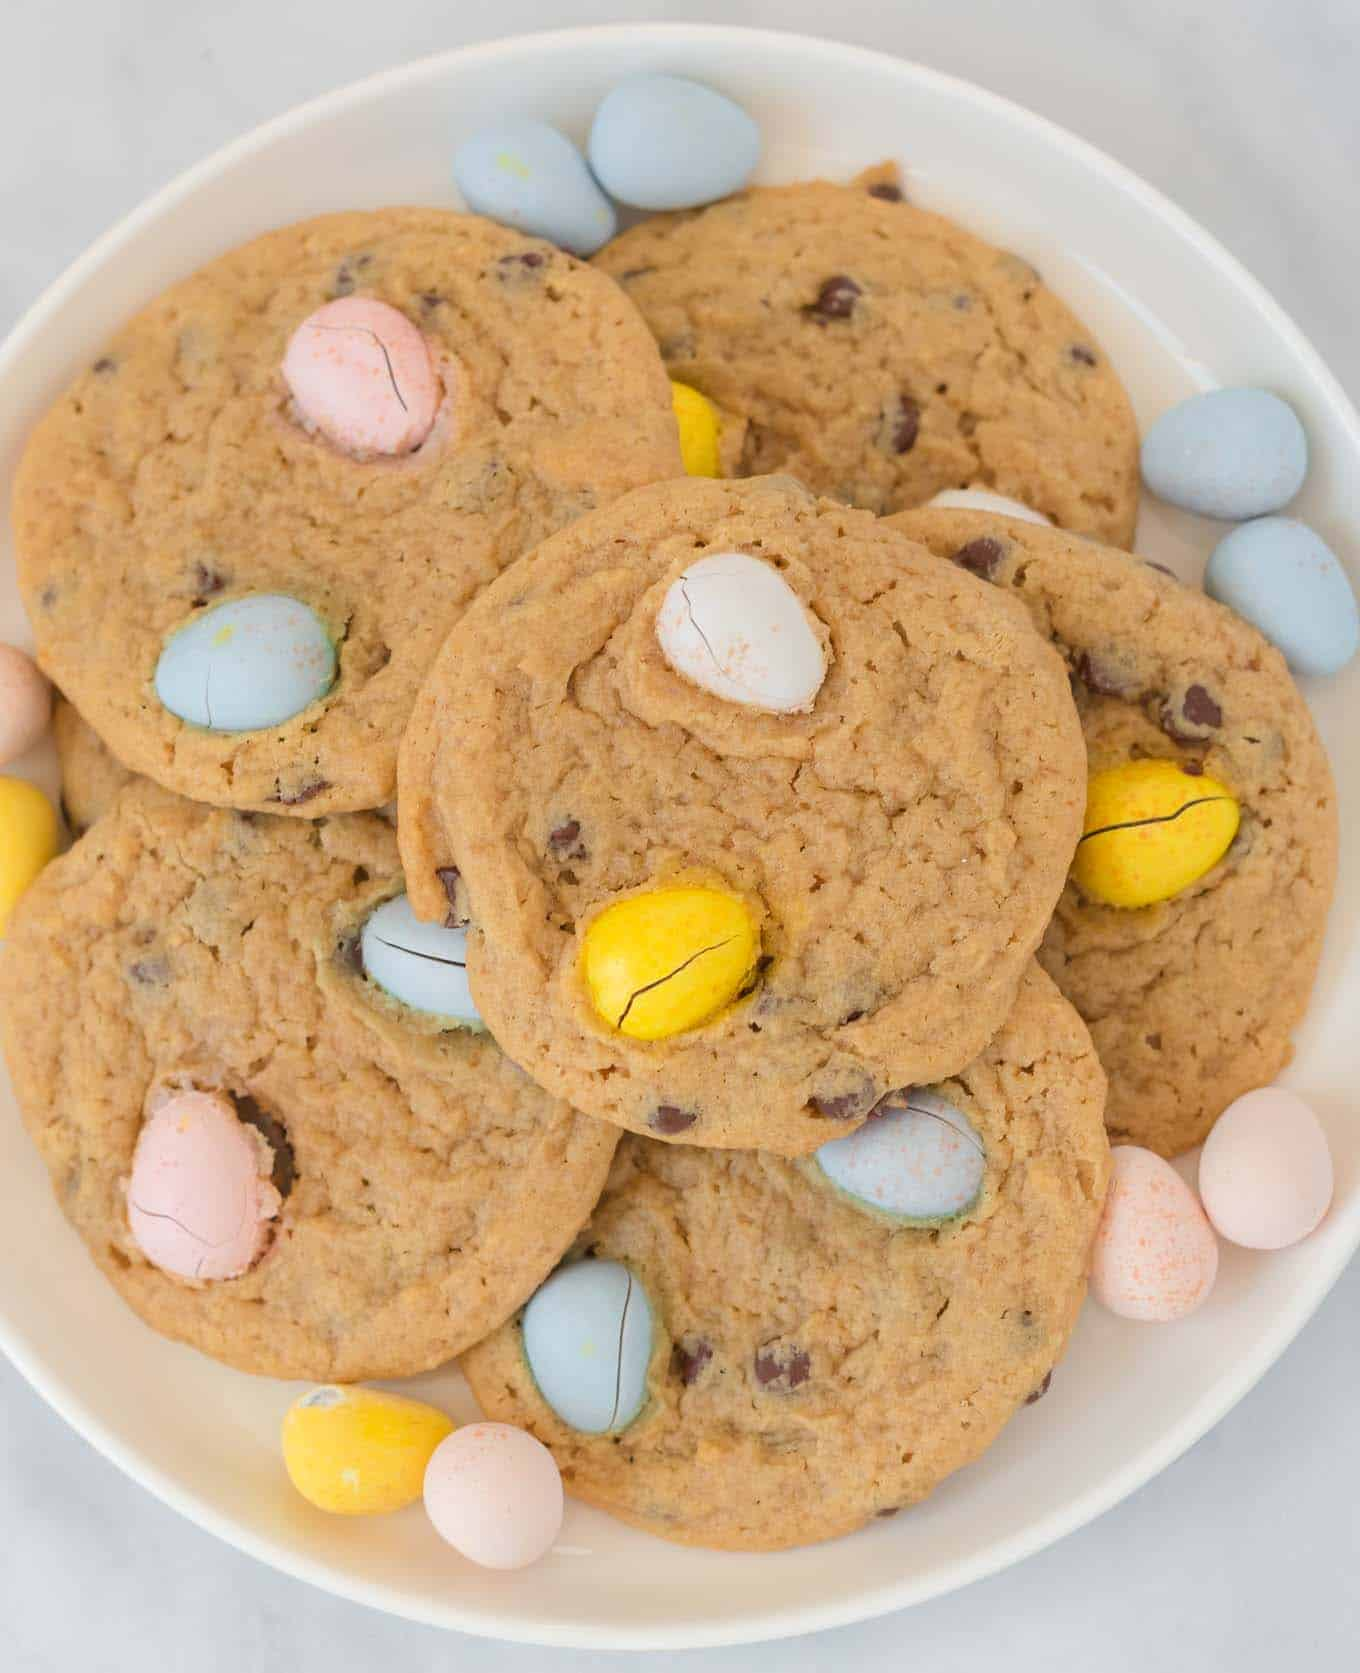 cadbury cookies on a white plate surrounded by mini cadbury eggs